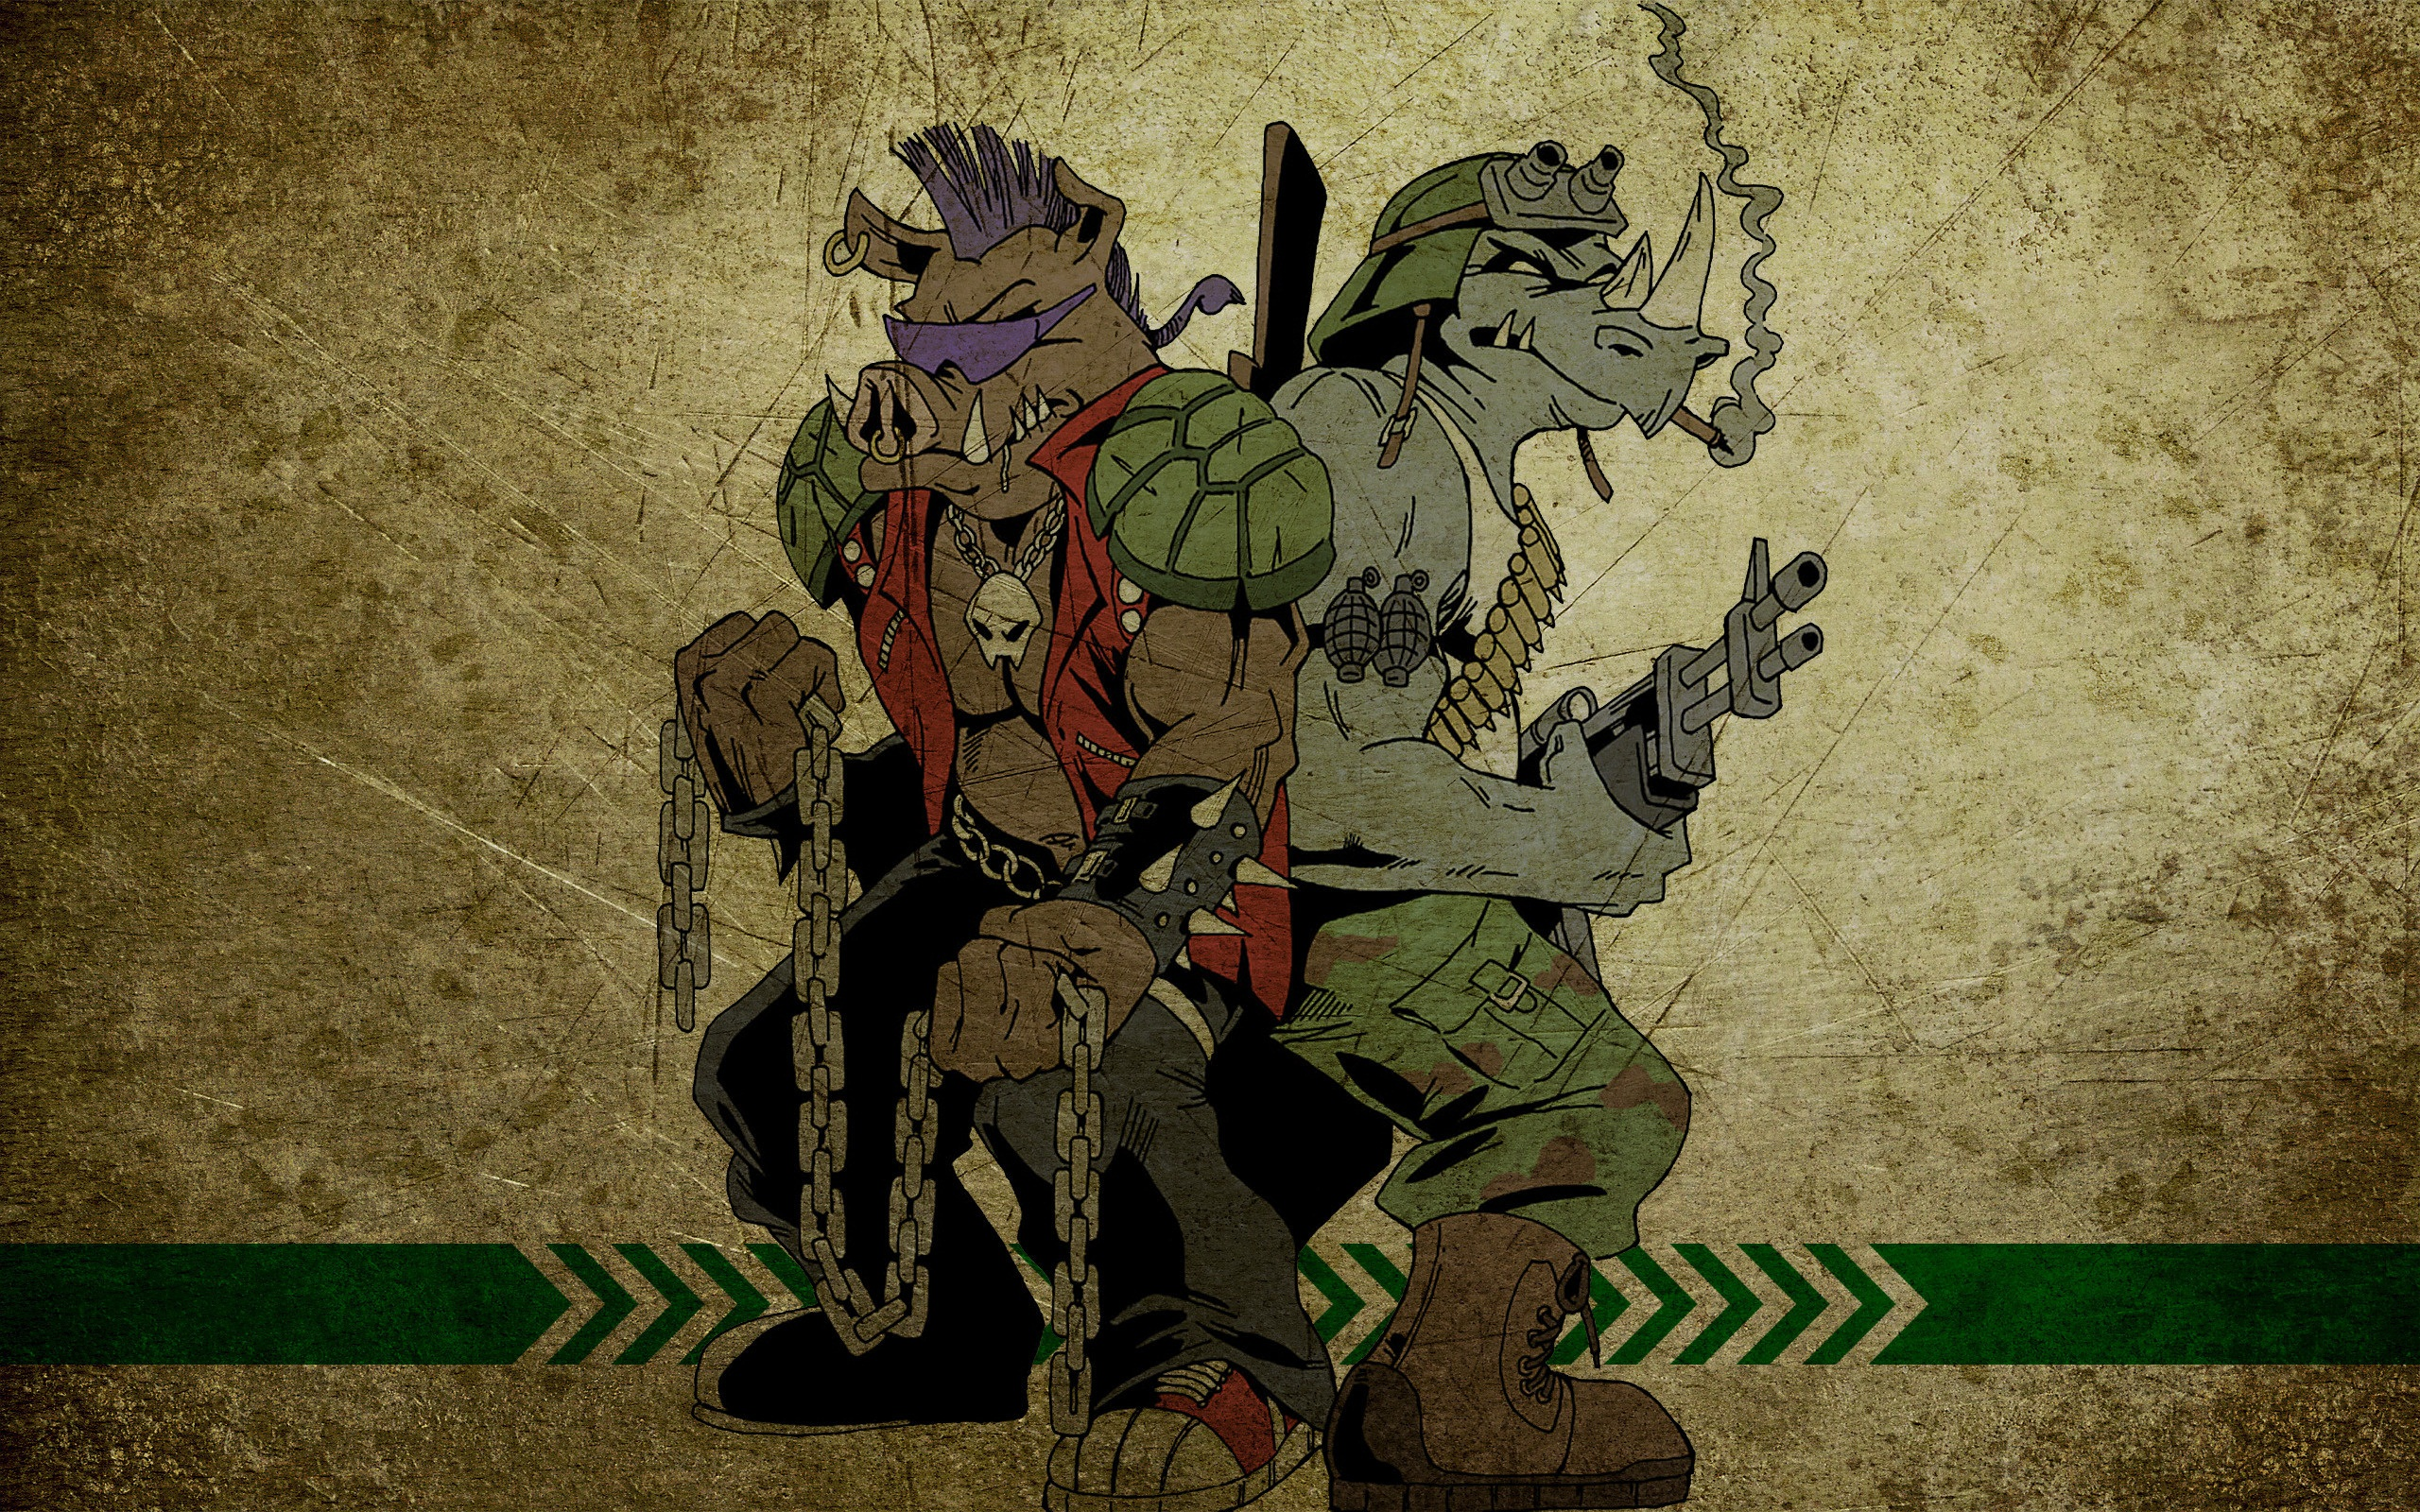 TMNT wallpaper miscellaneous 24 (2560х1600)